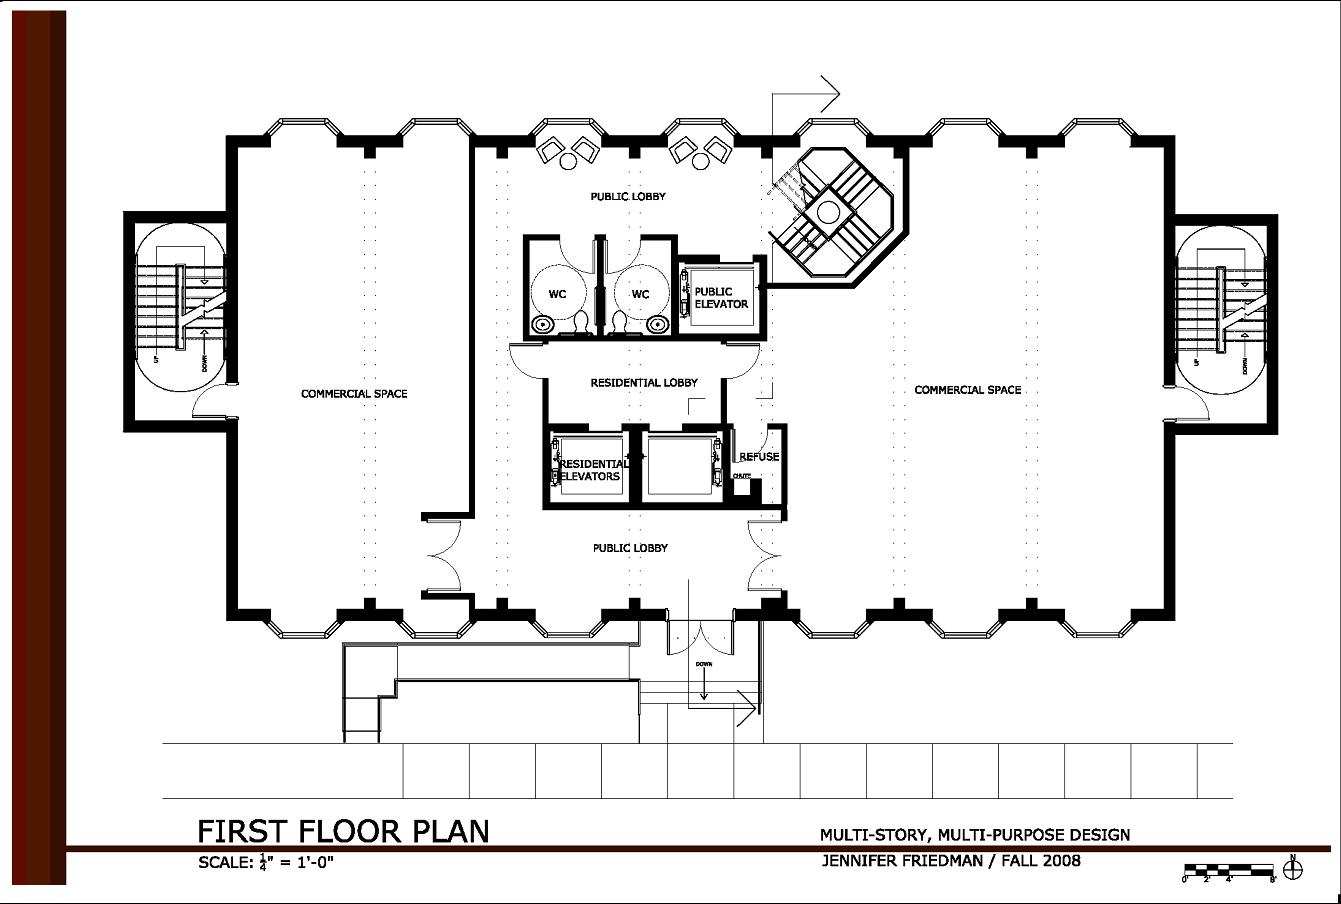 15 small two story office building design images two for Building floor plan designer